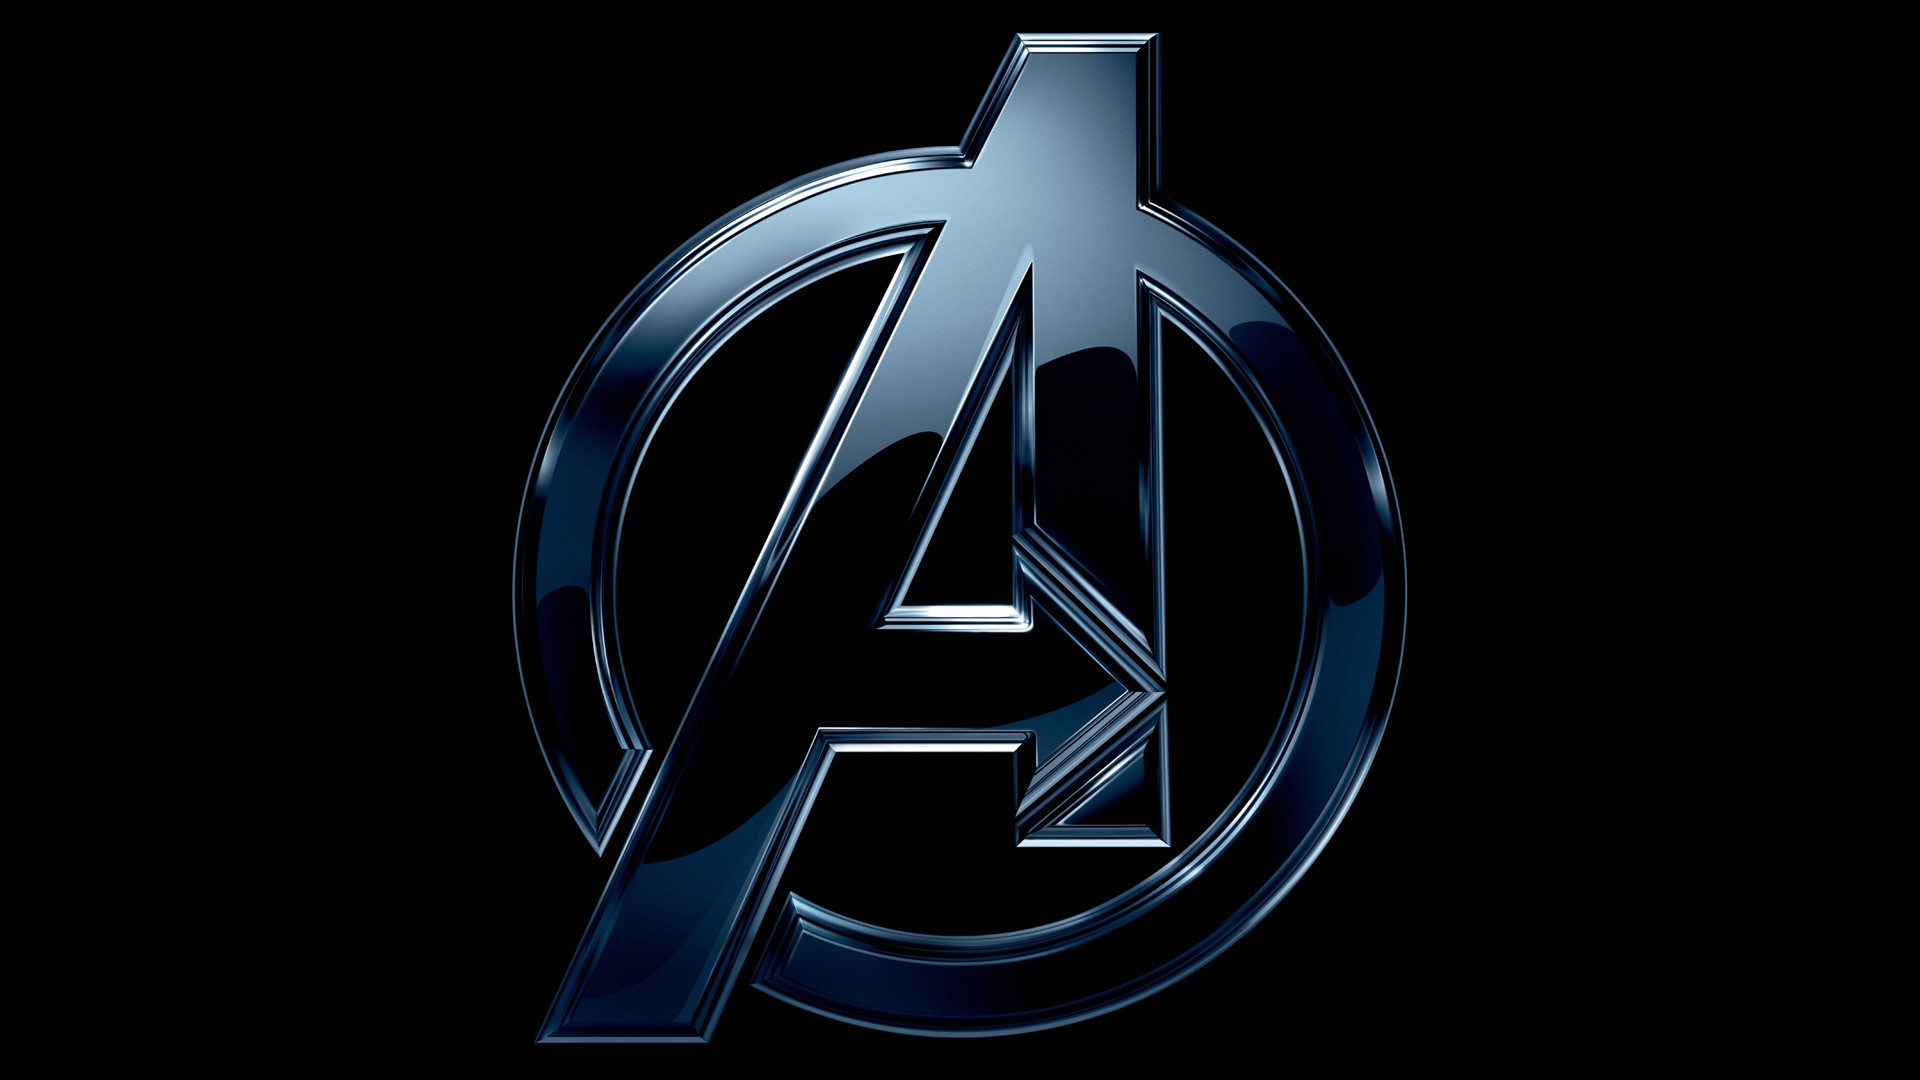 1920x1080 Logo avengers wallpaper HD.